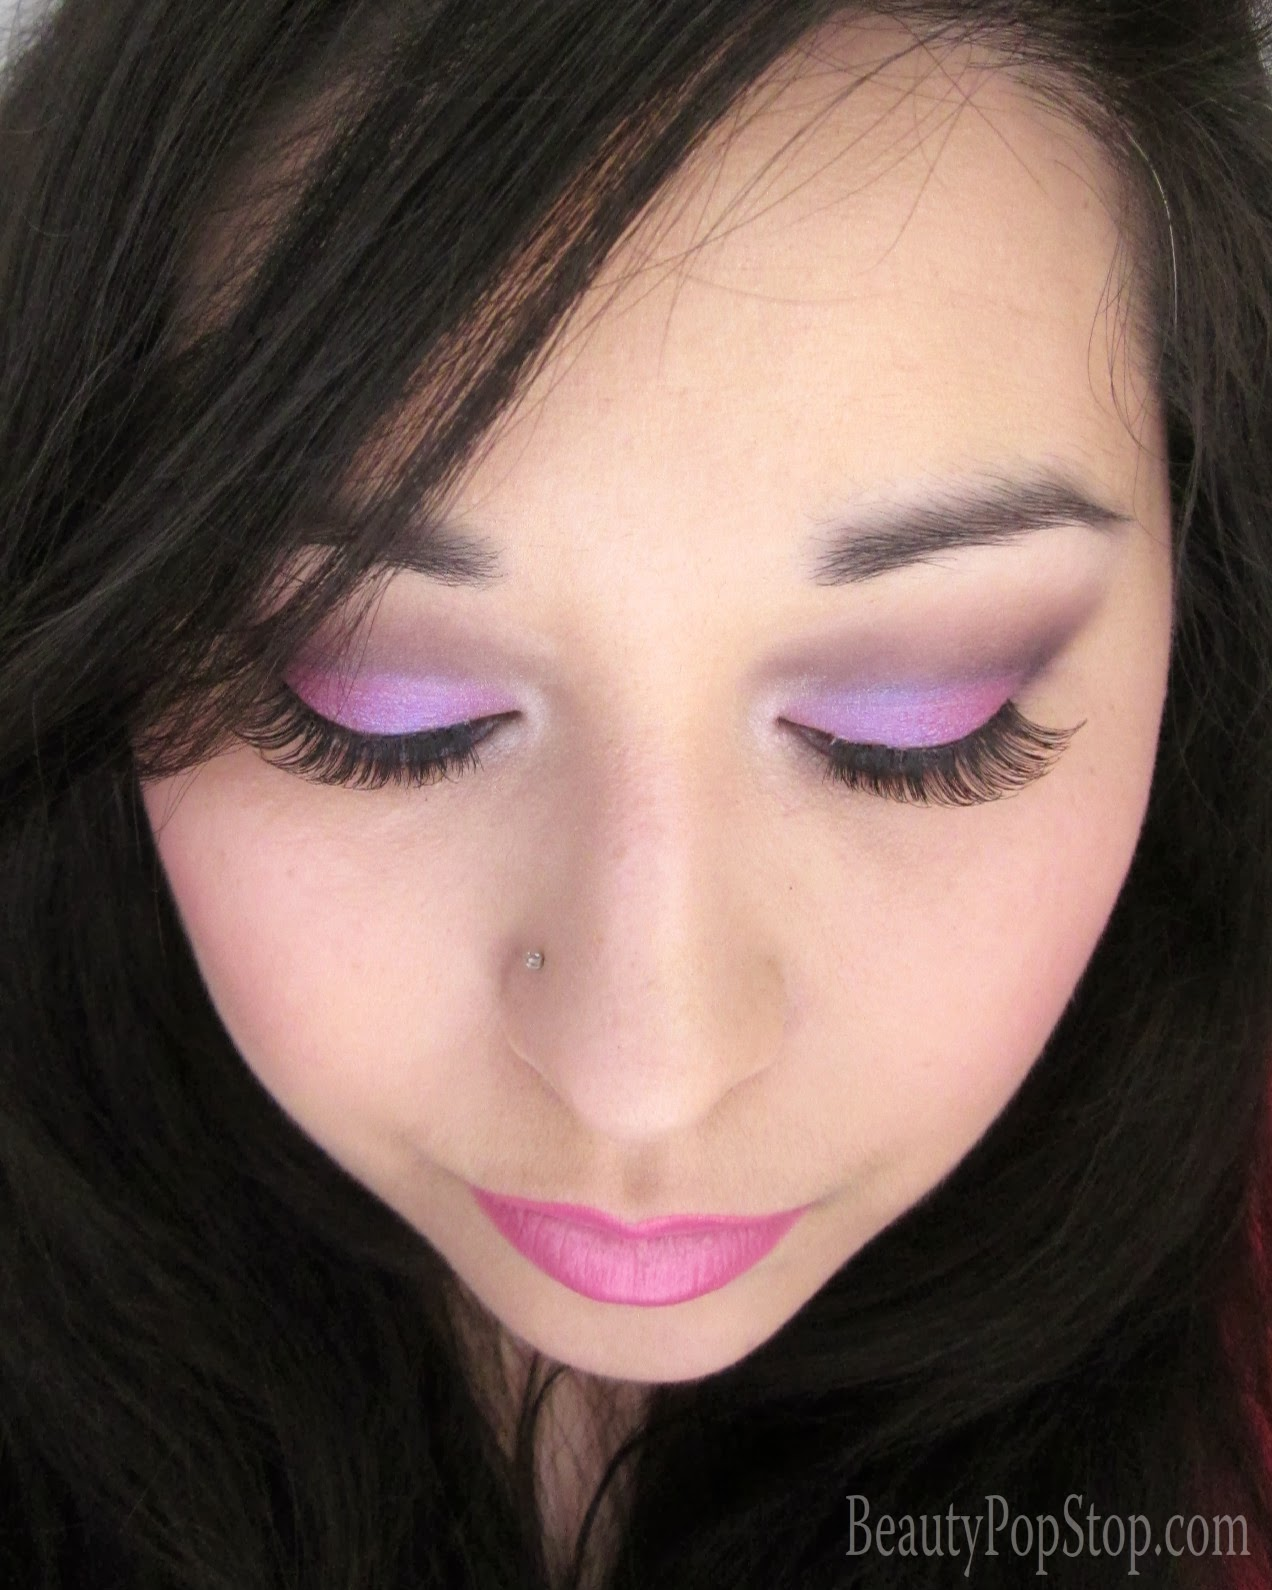 paul and joe beaute spring 2014 makeup tutorial using sugarpill, mac, make up for ever, inglot